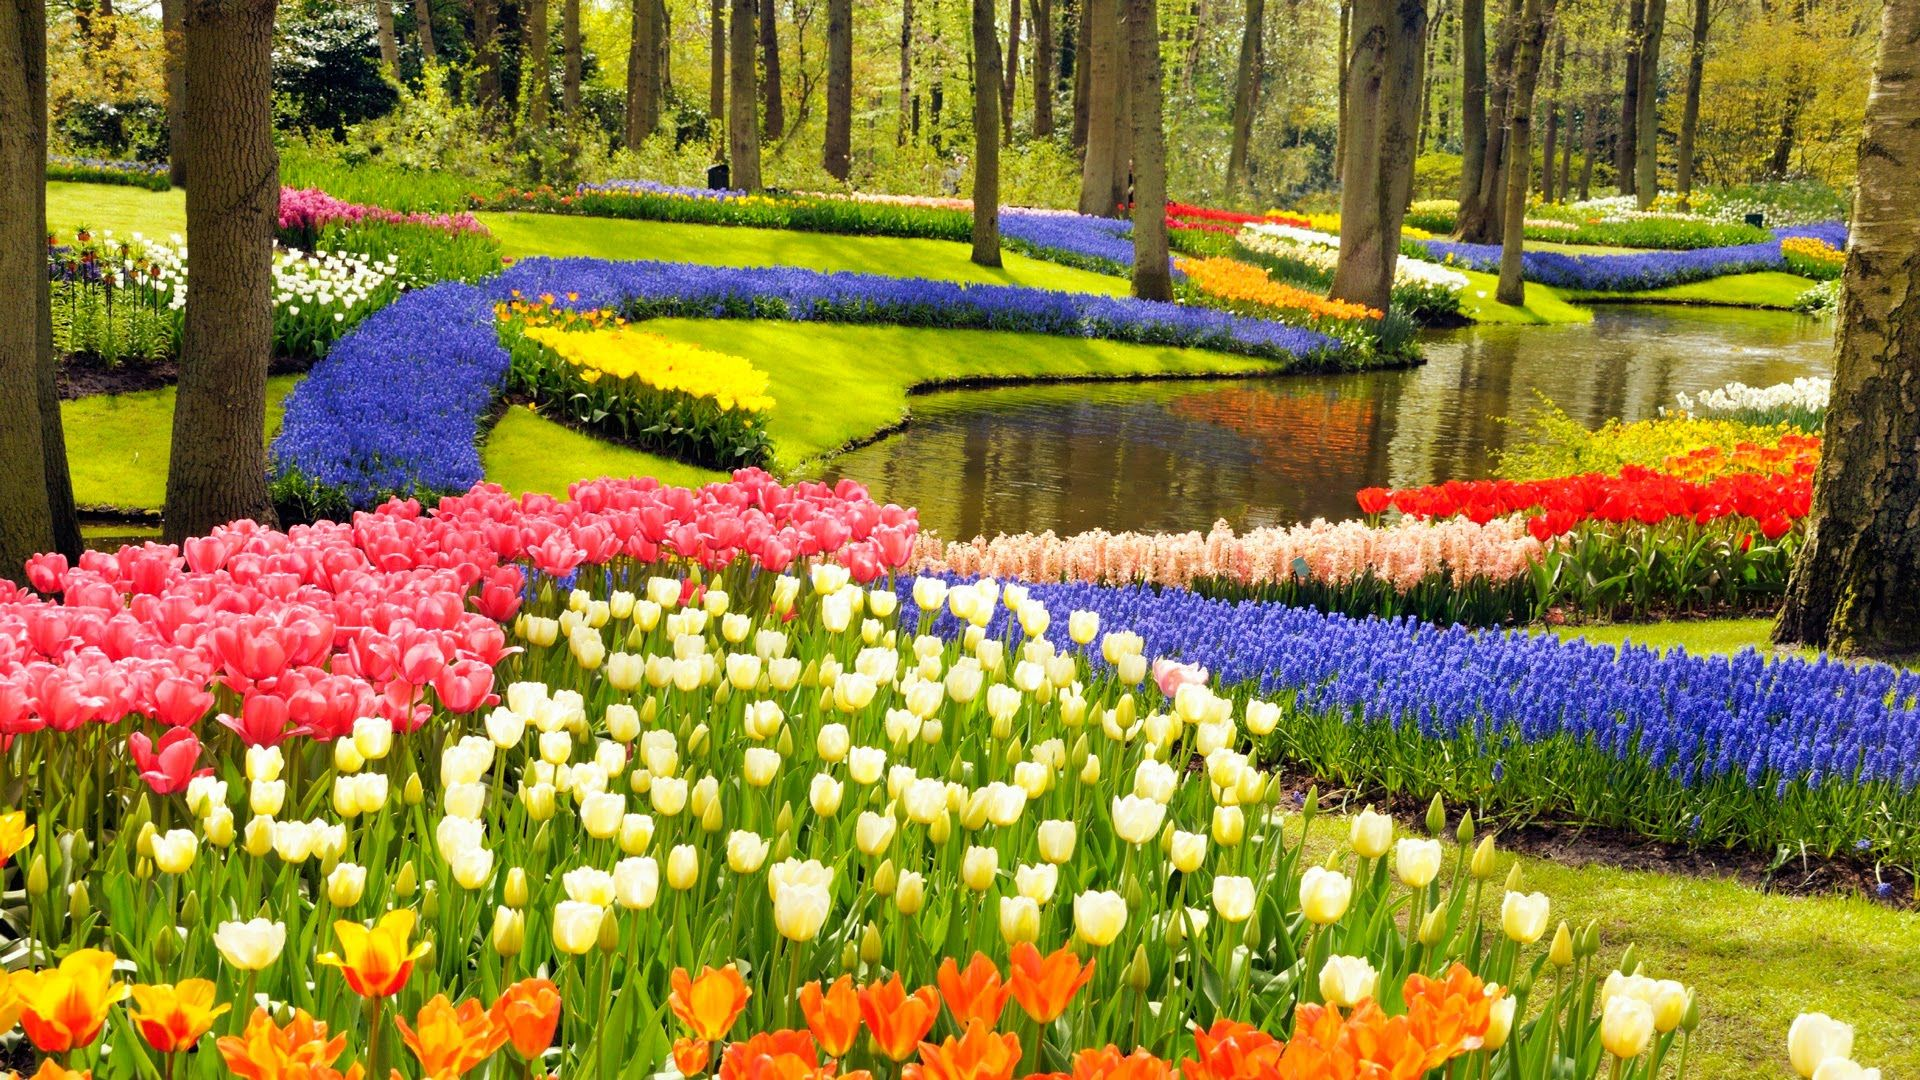 keukenhof gardens and tulip fields tour from amsterdam | i love